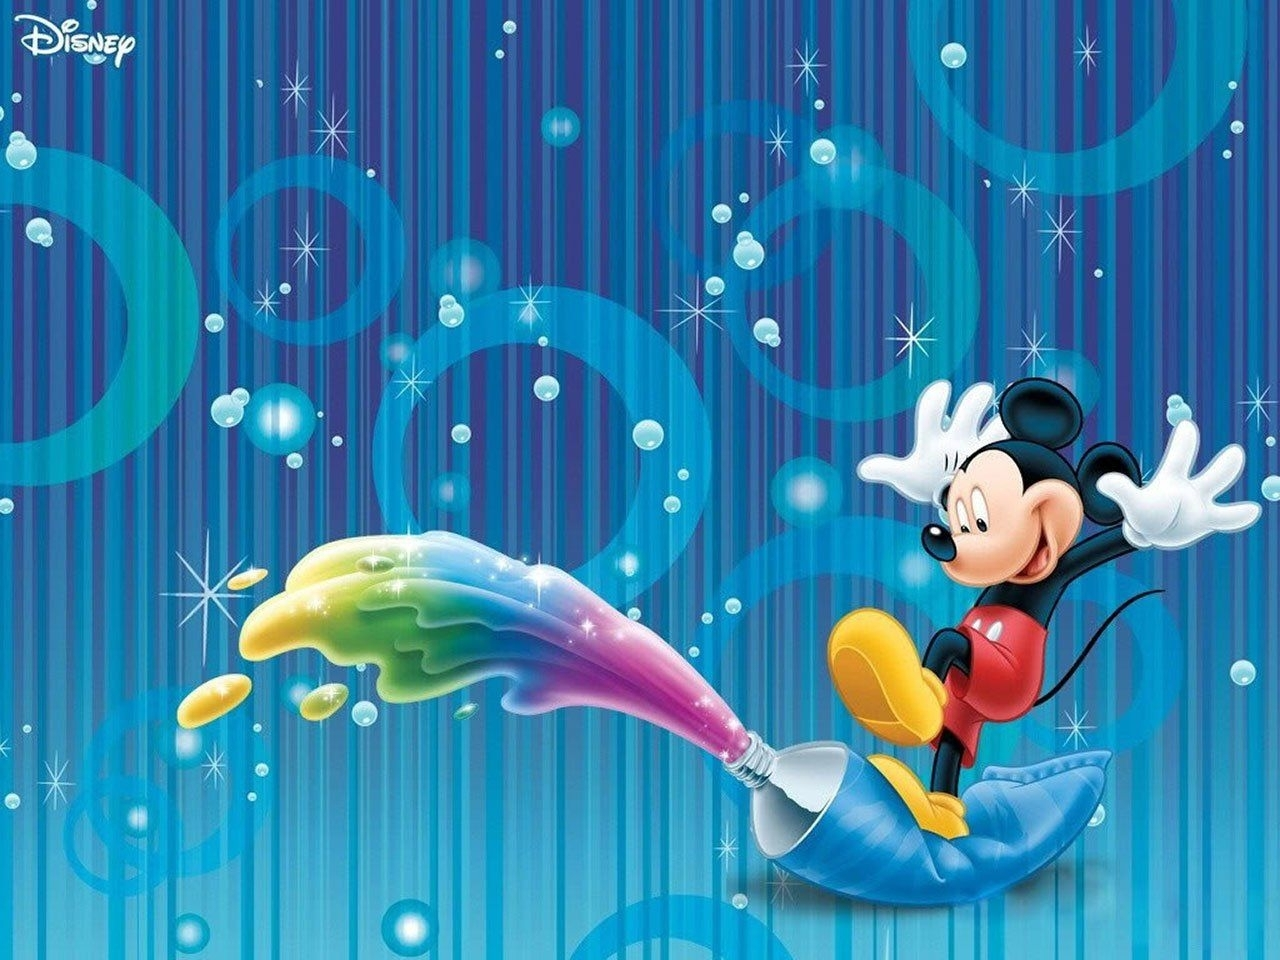 wallpaper mickey mouse collection for free download | hd wallpapers